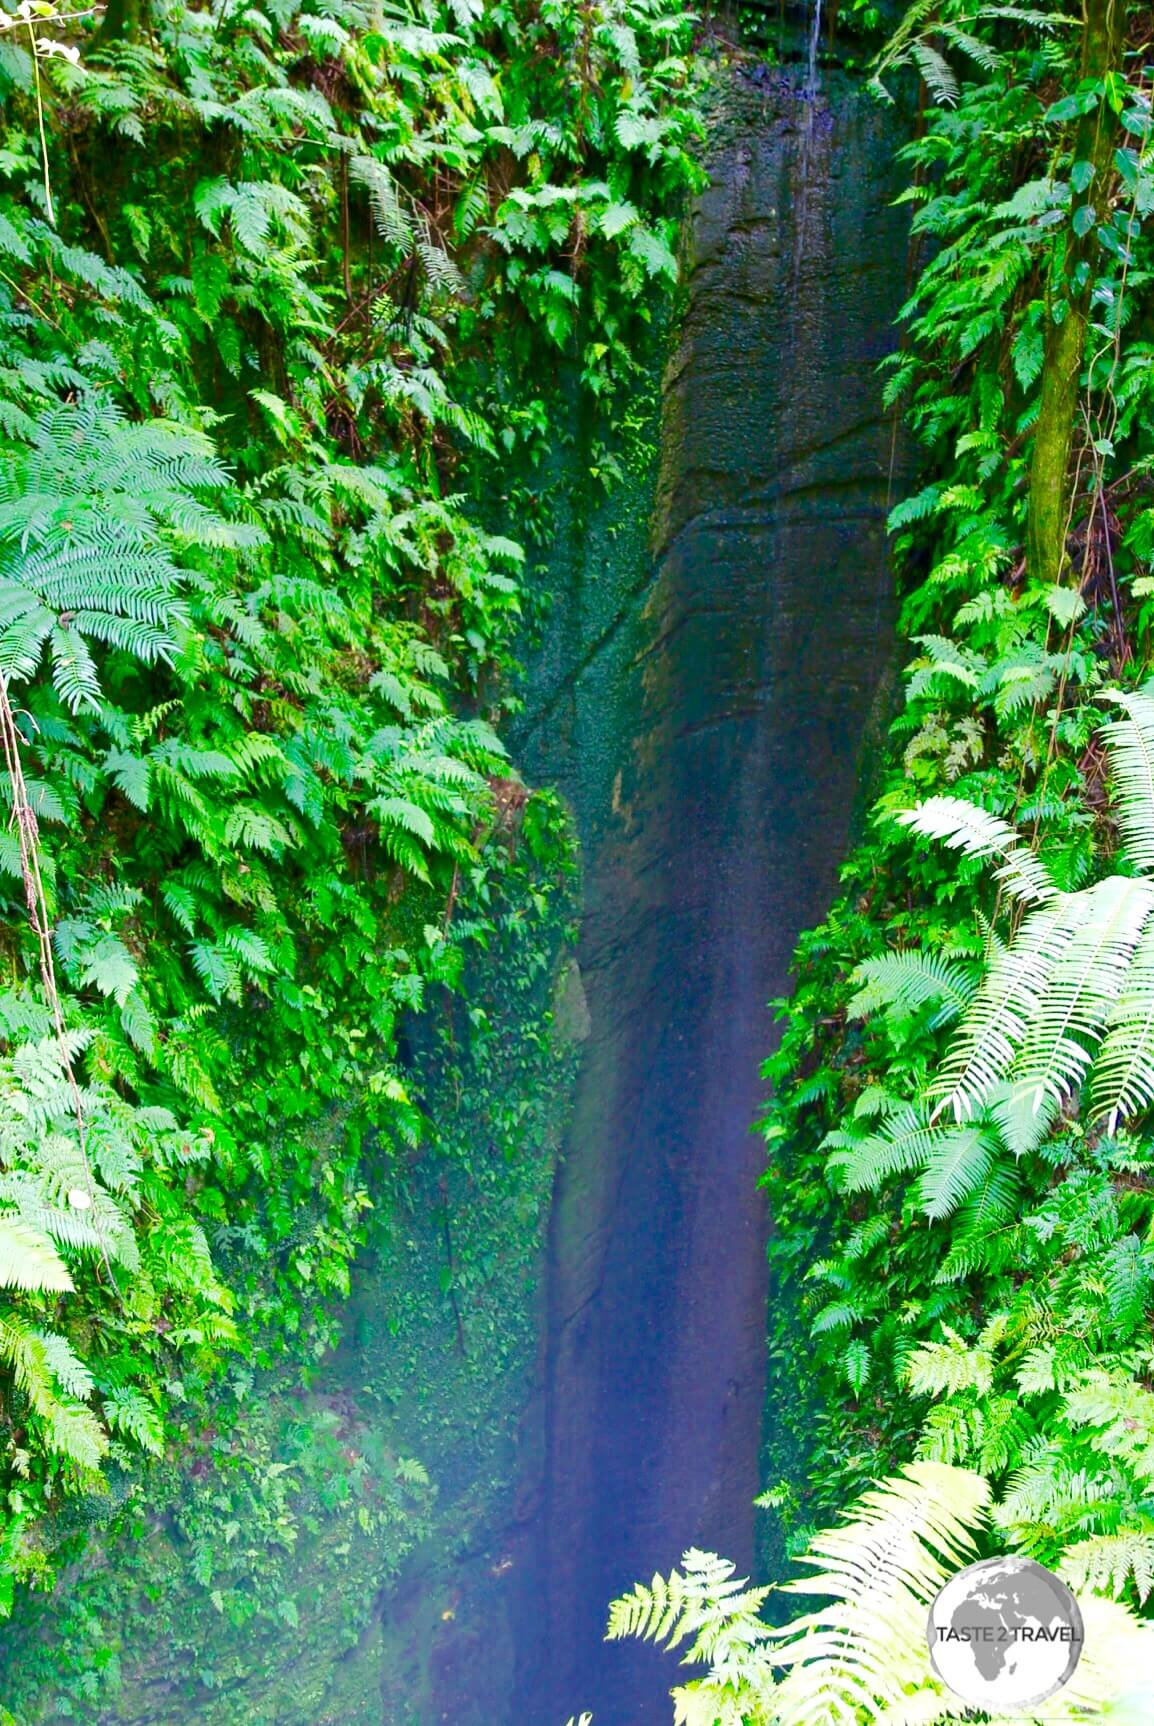 'Ana - a bottomless sink-hole in the middle of the rainforest on 'Eua.